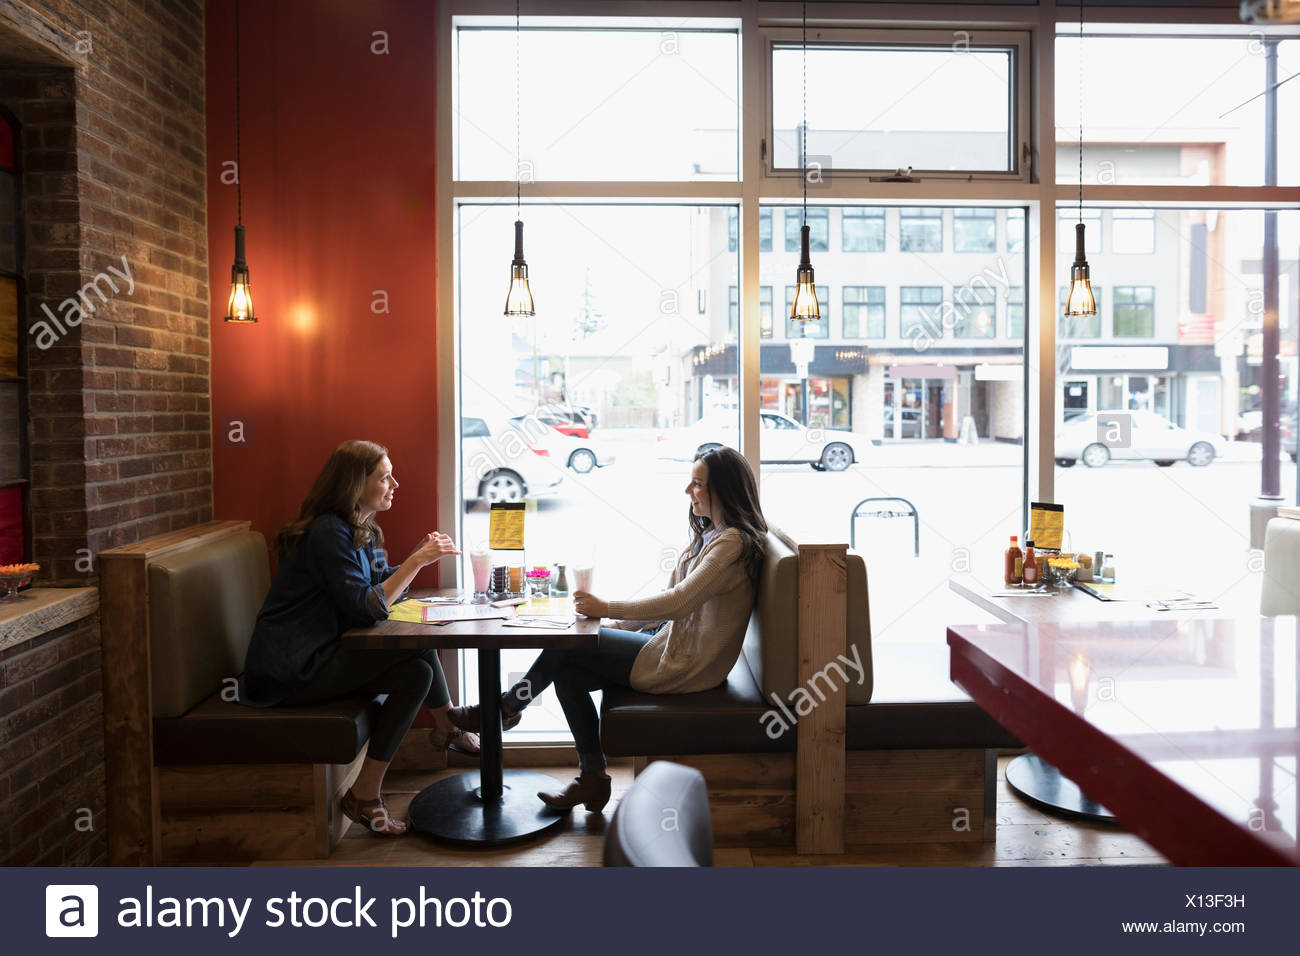 Mother and teenage daughter talking, dining at diner booth - Stock Image